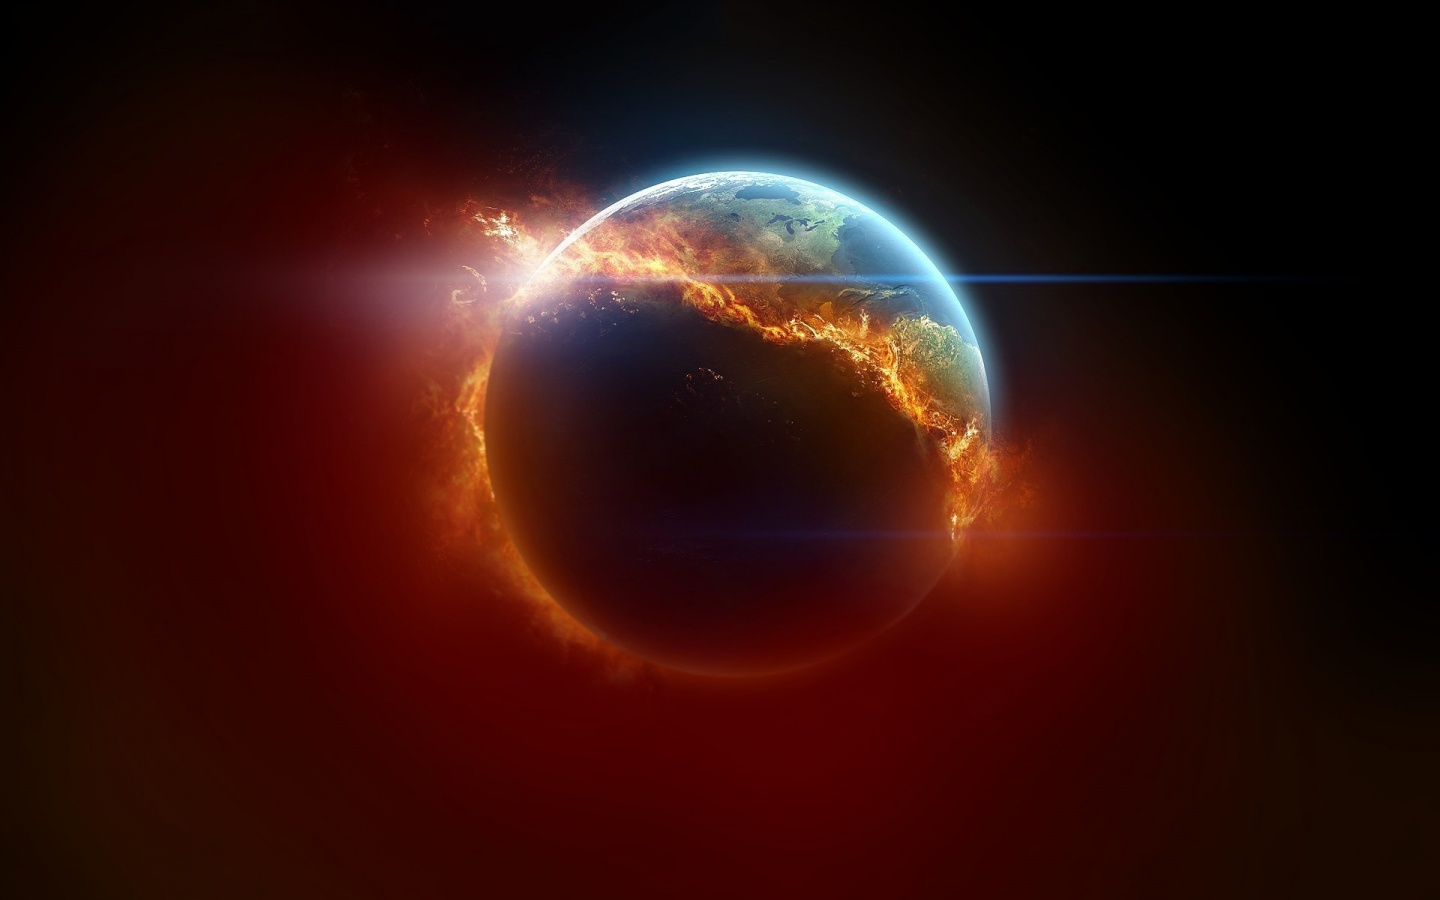 Burning Earth Art Wallpaper in 1440x900 Widescreen